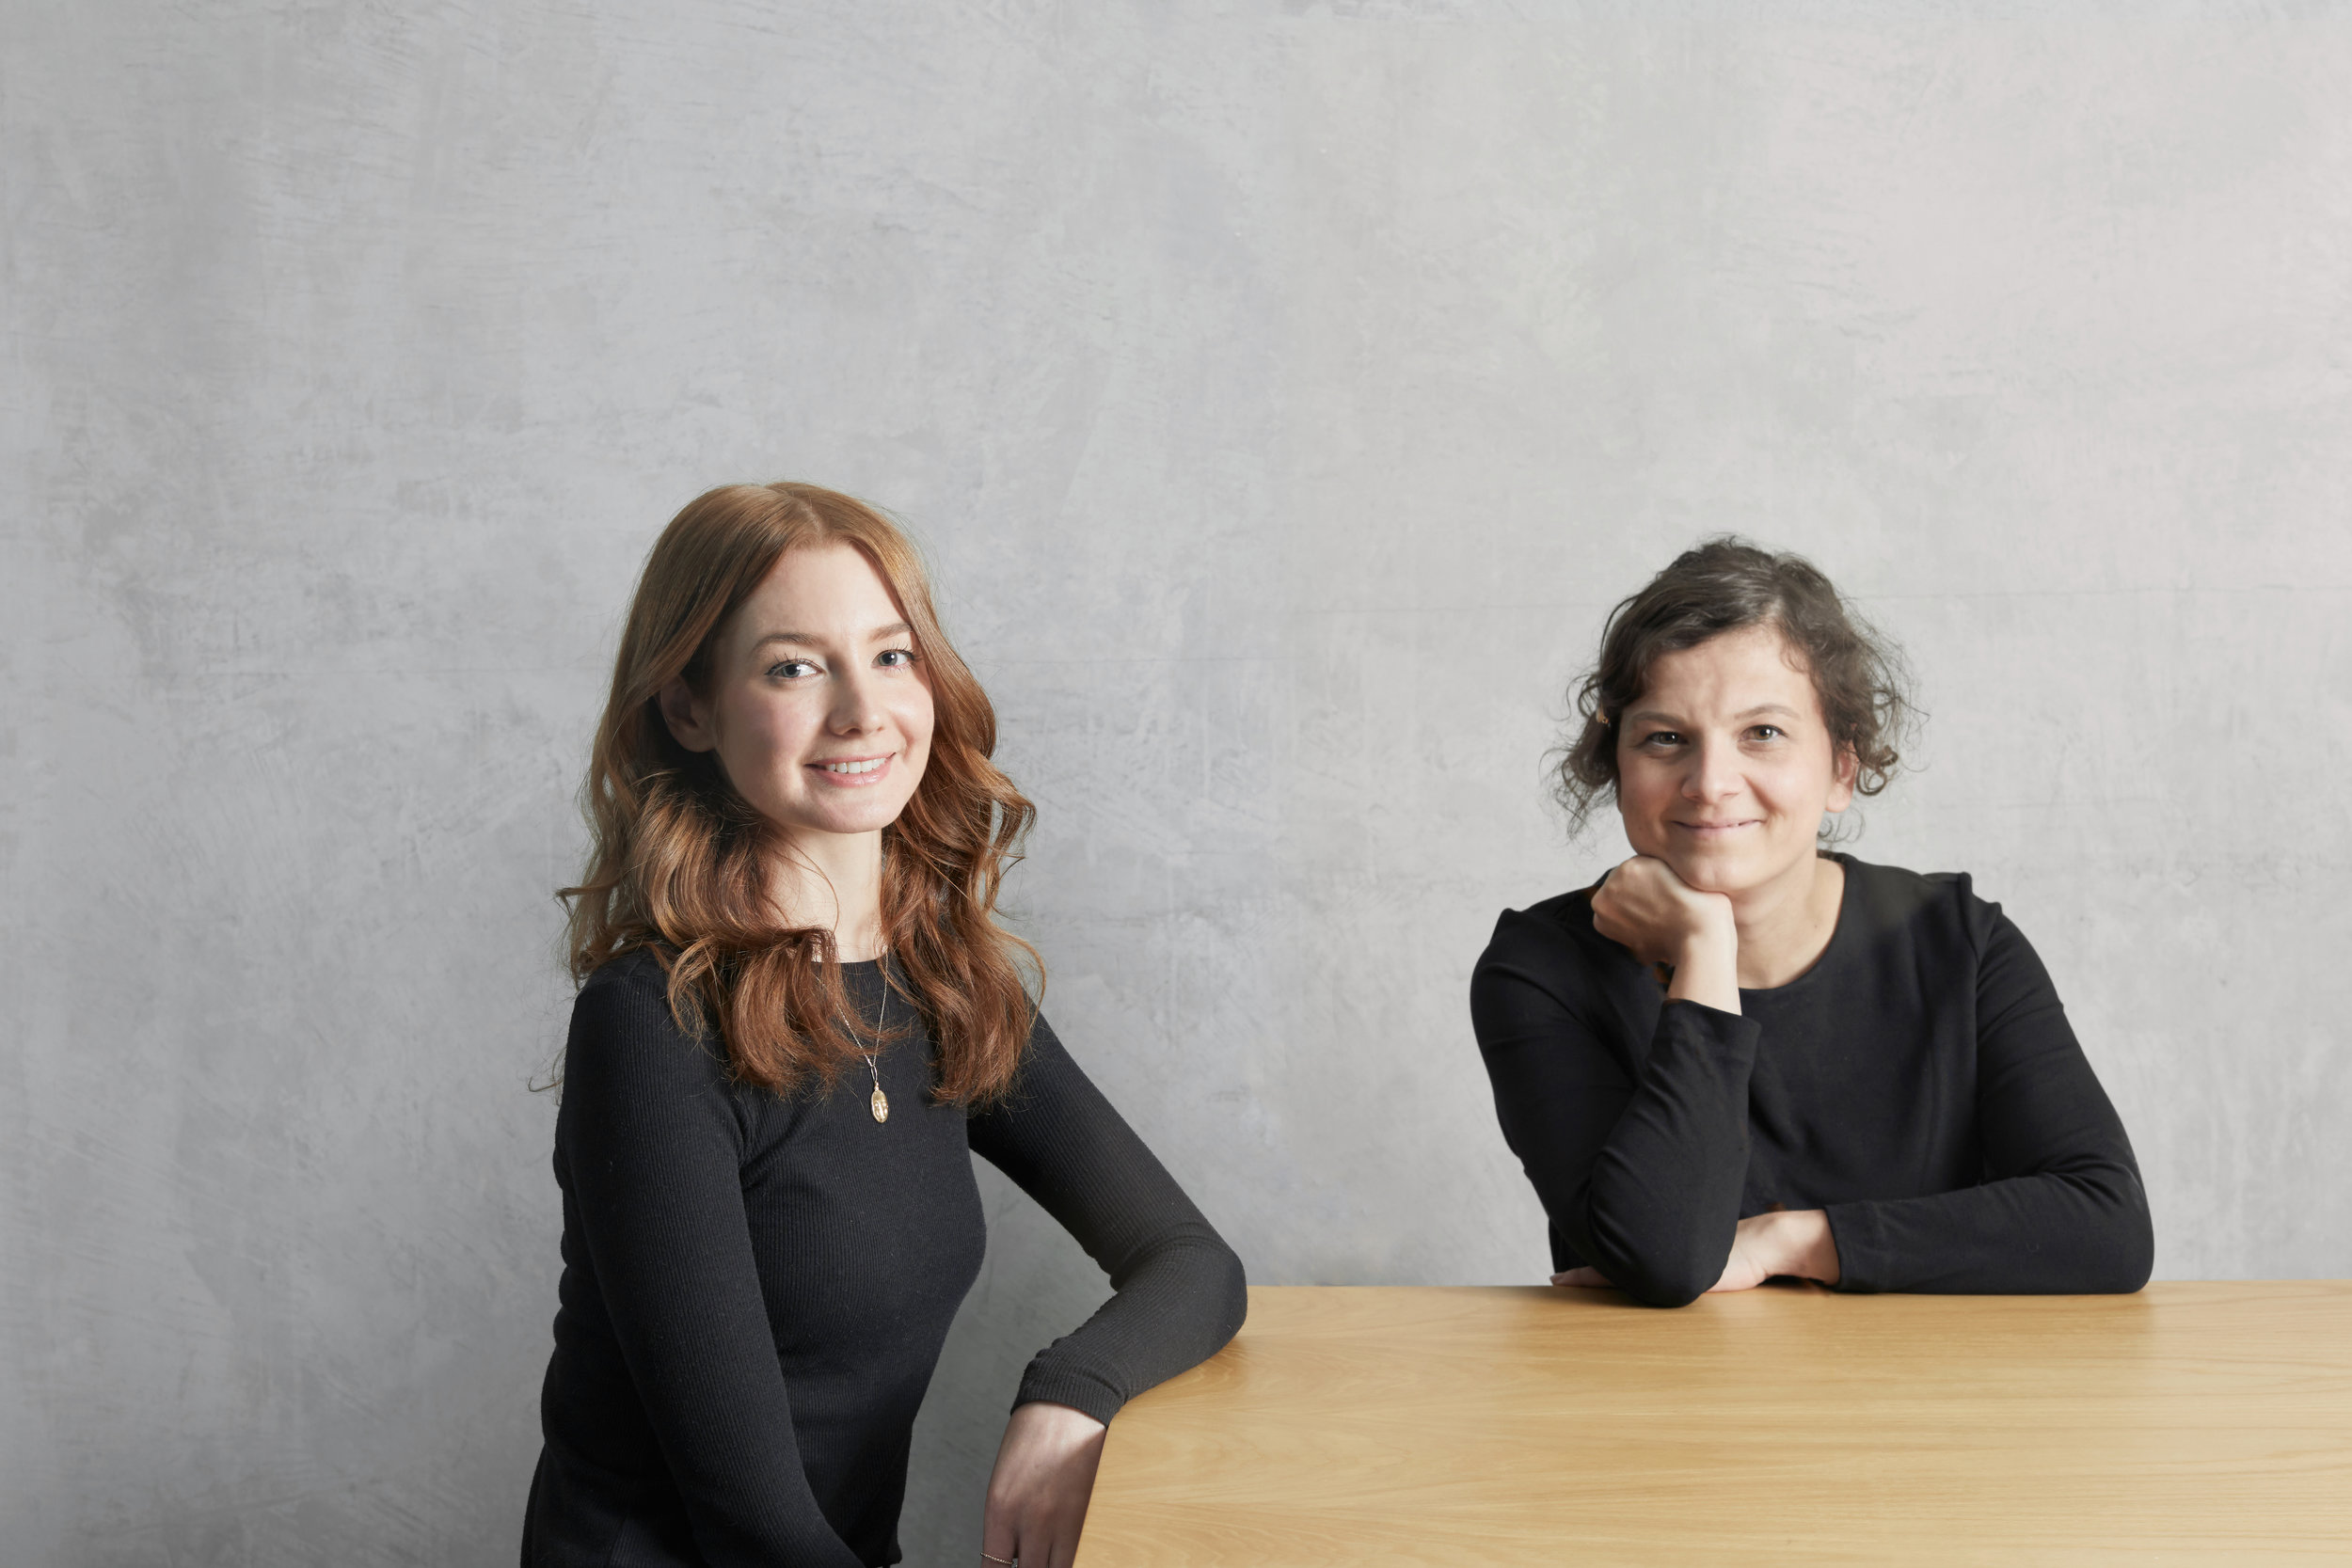 Amy PIerce and Nat Widera are Pierce Widera, who were named the Emerging Interior Design Practice at the 2019 Australian Interior Design Awards. Photo © Jana Langhorst